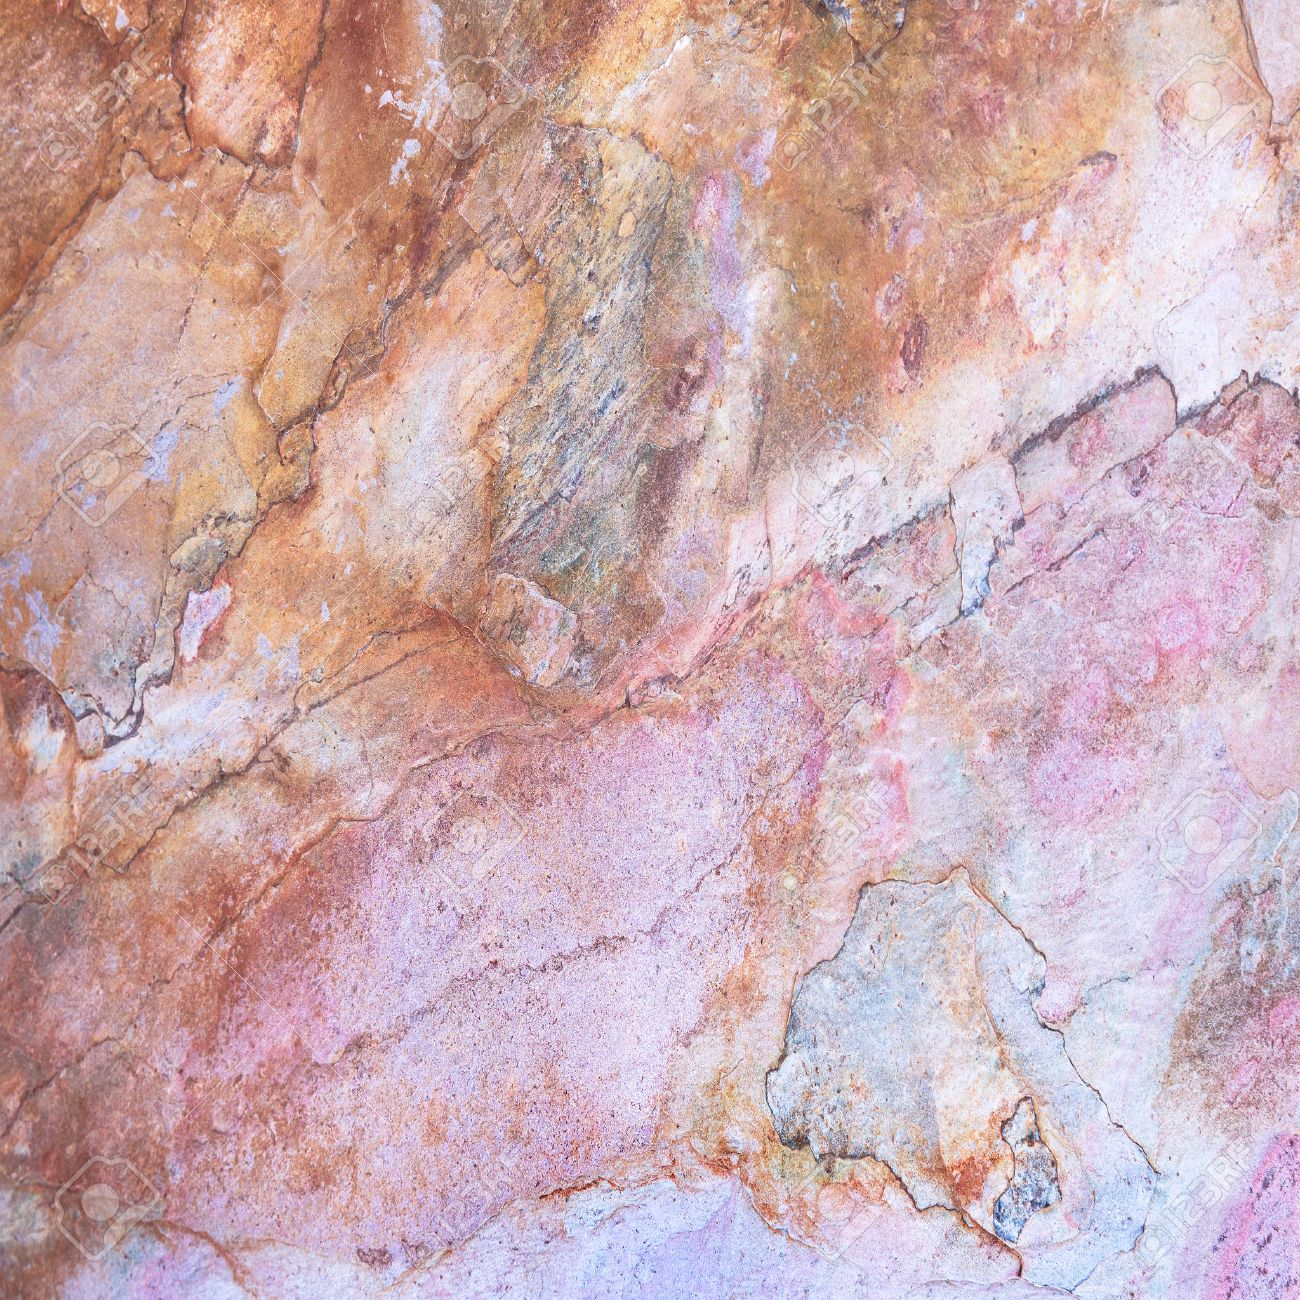 Beautiful Wallpaper Marble Light Pink - 26698323-marble-background-light-pink-and-orange-colors-pattern-textured-wallpaper-expensive-material-for-ext  You Should Have_392111.jpg